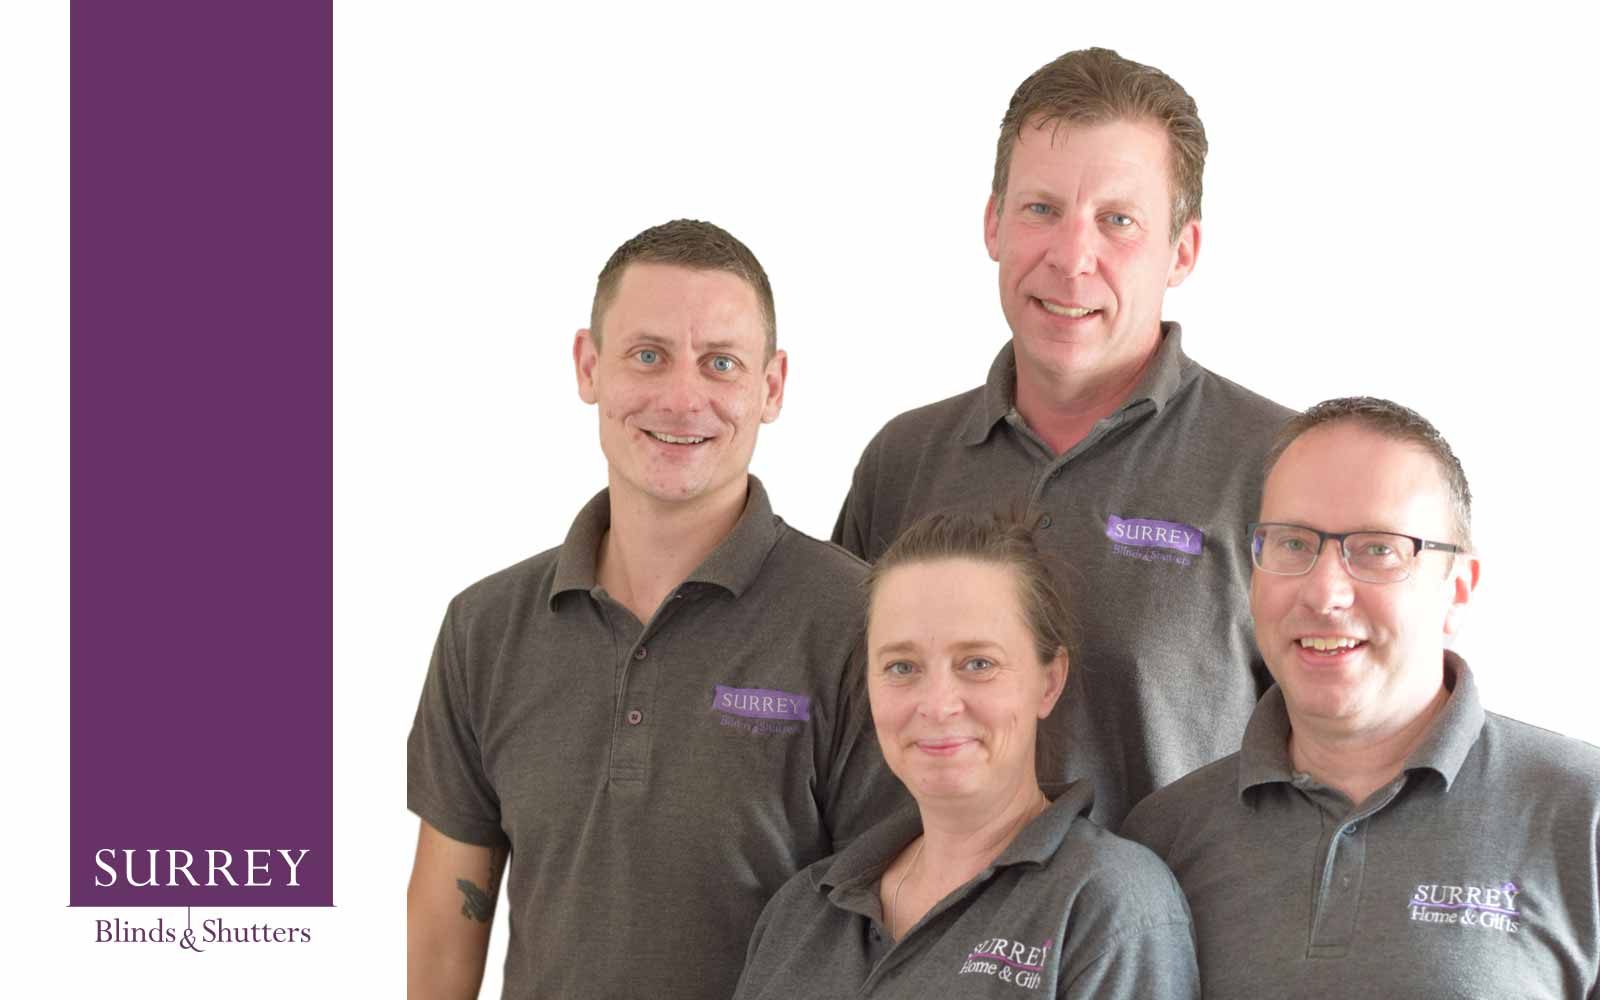 The Surrey Blinds Team